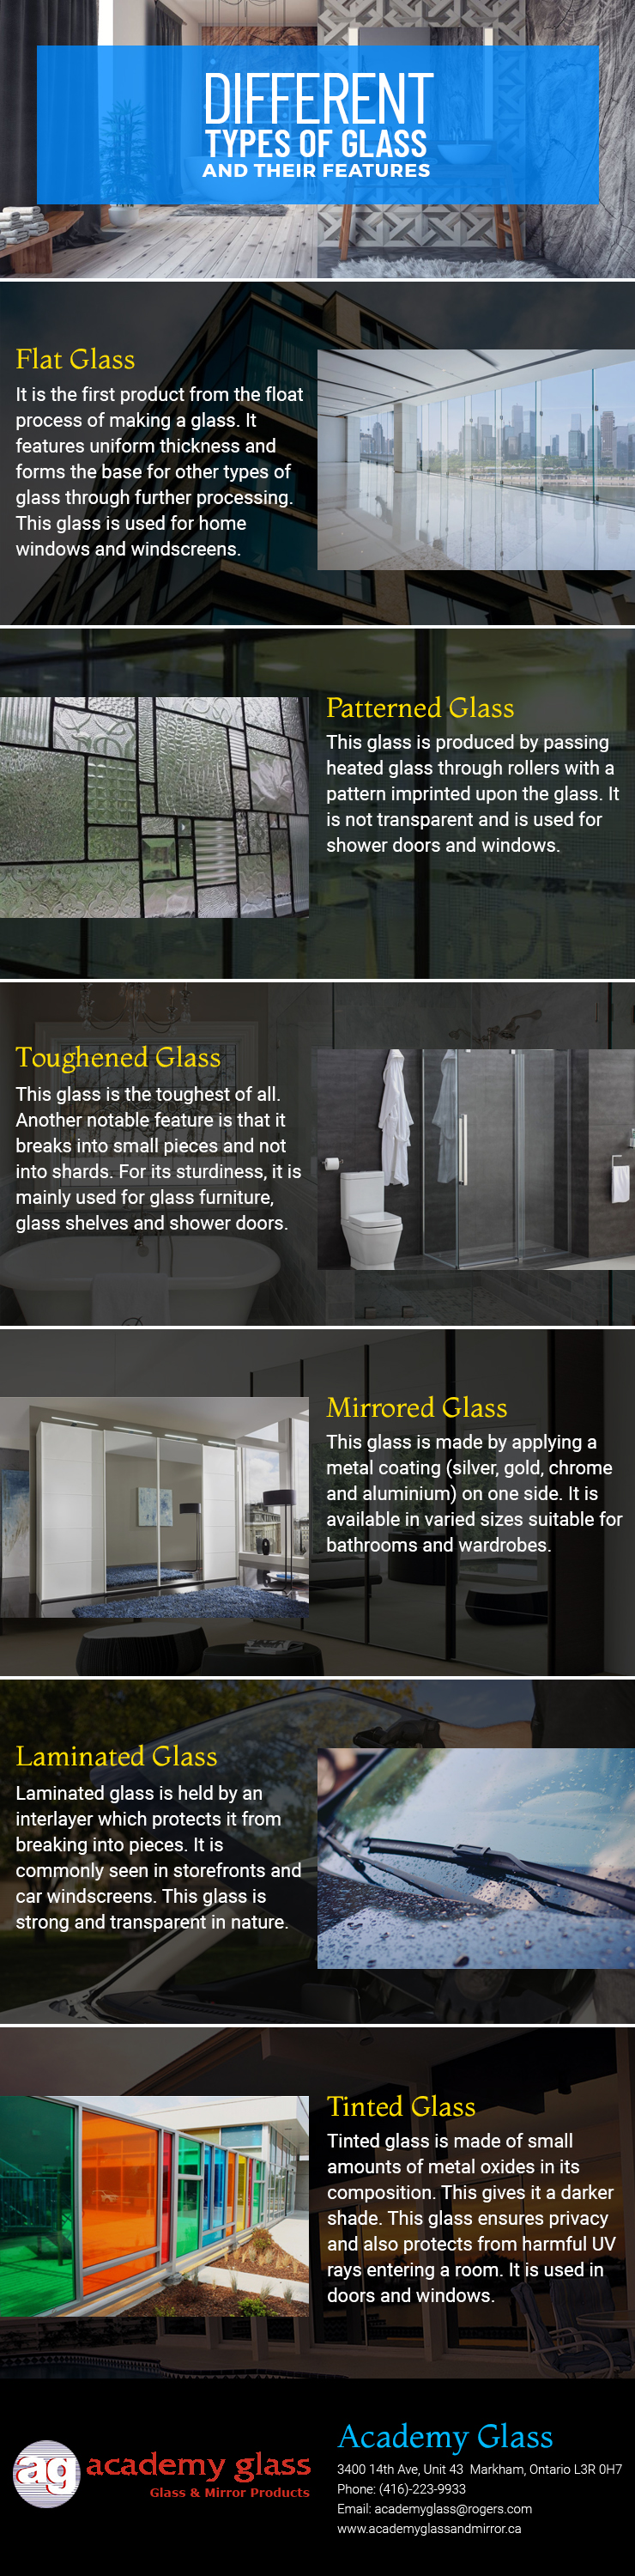 infographic - Academy Glass